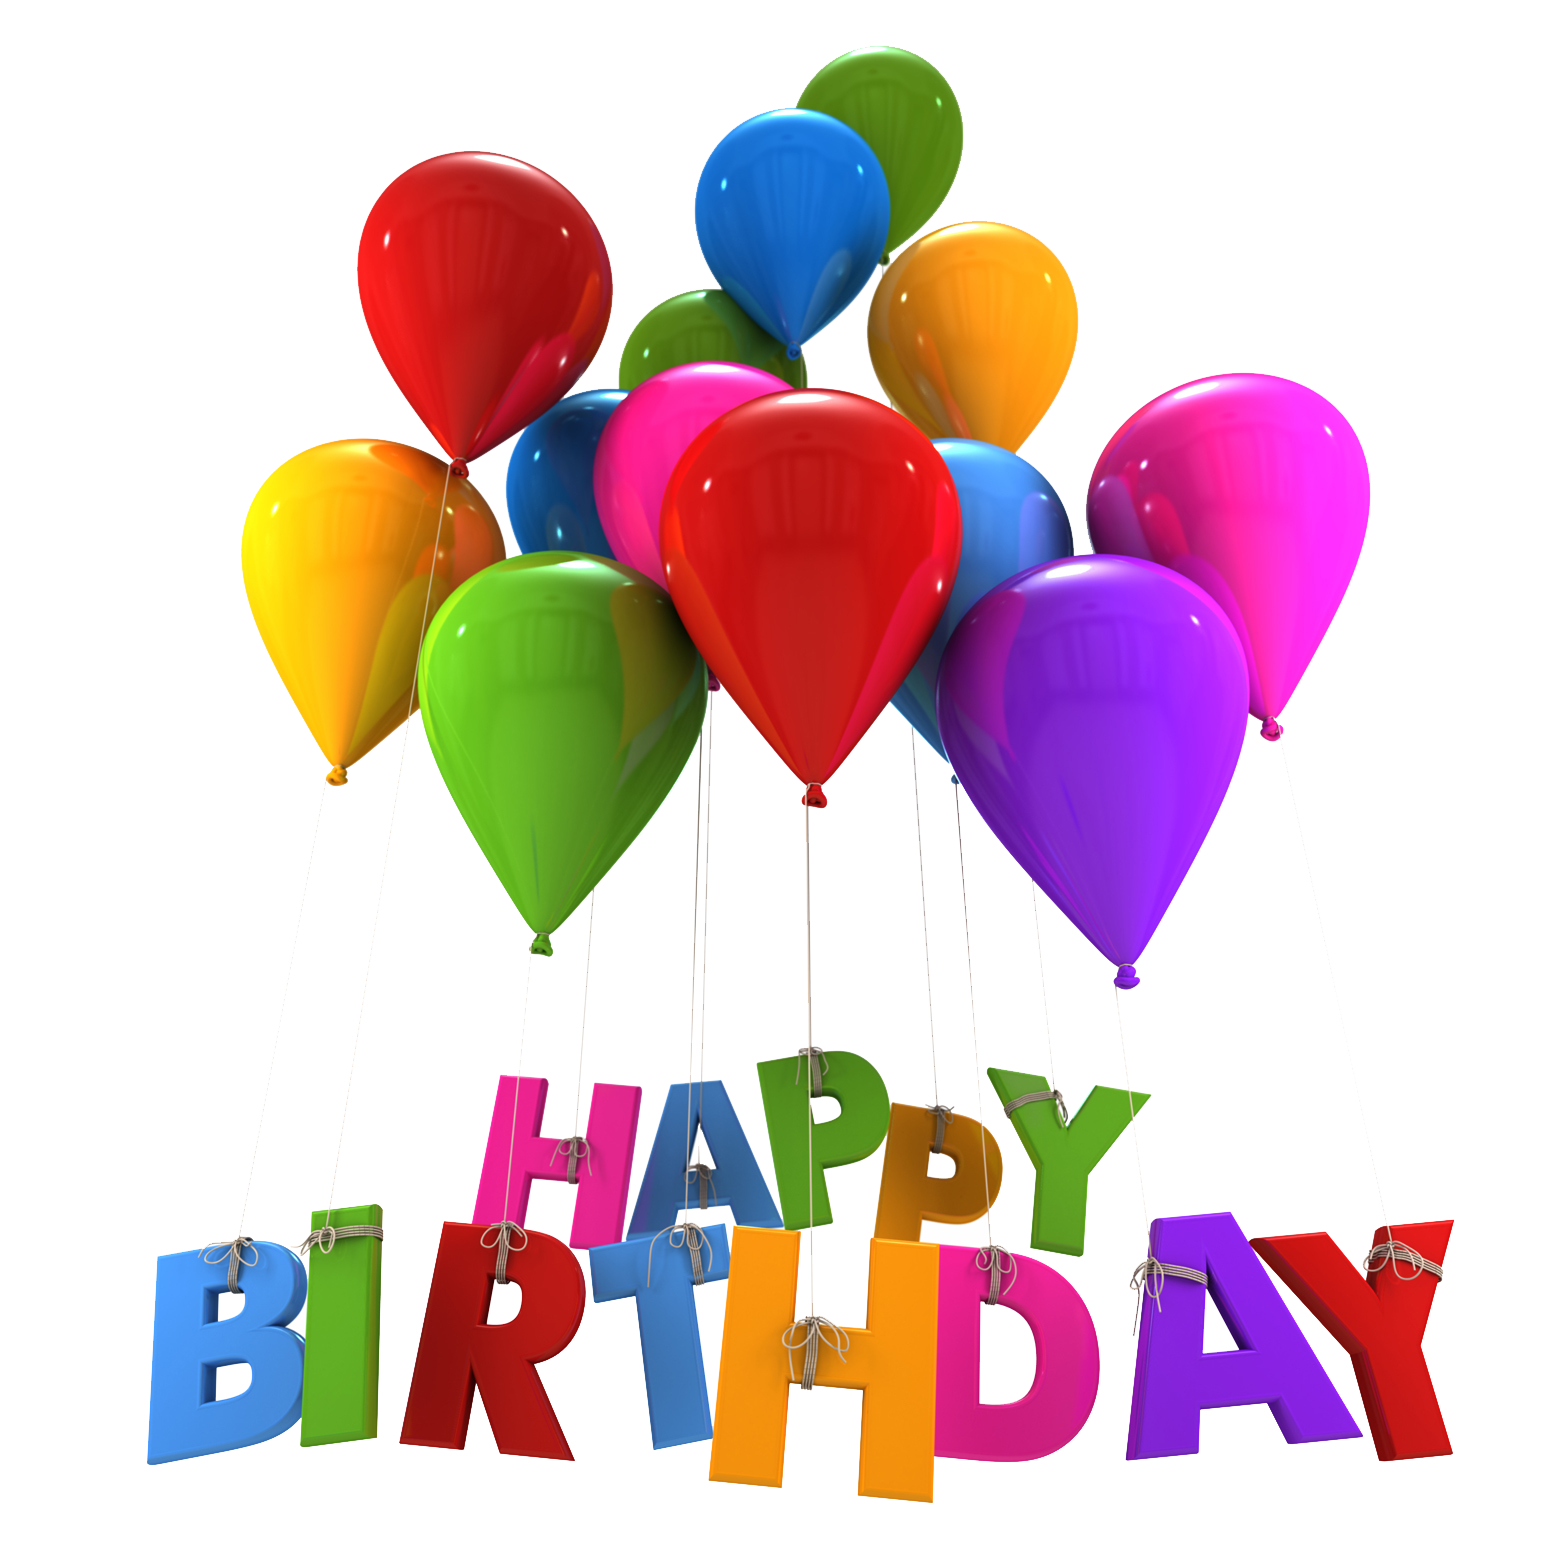 Happy birthday banner background png. Images free download clipart library library